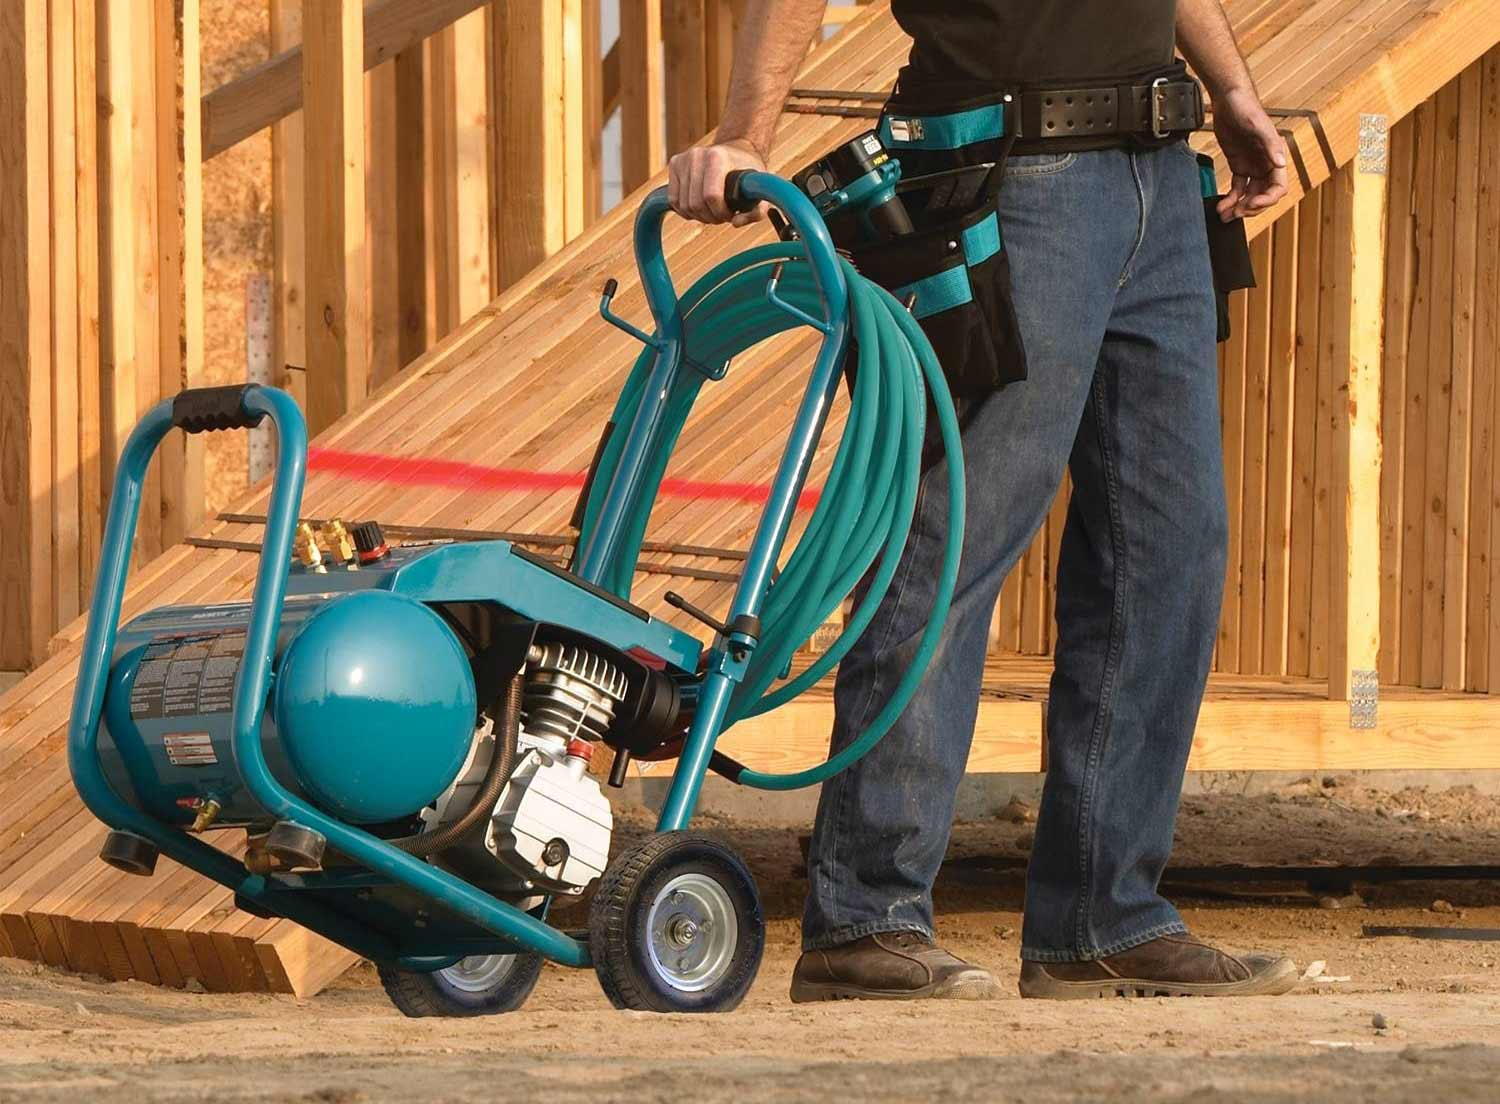 Three Reasons to Own a Portable Air Compressor